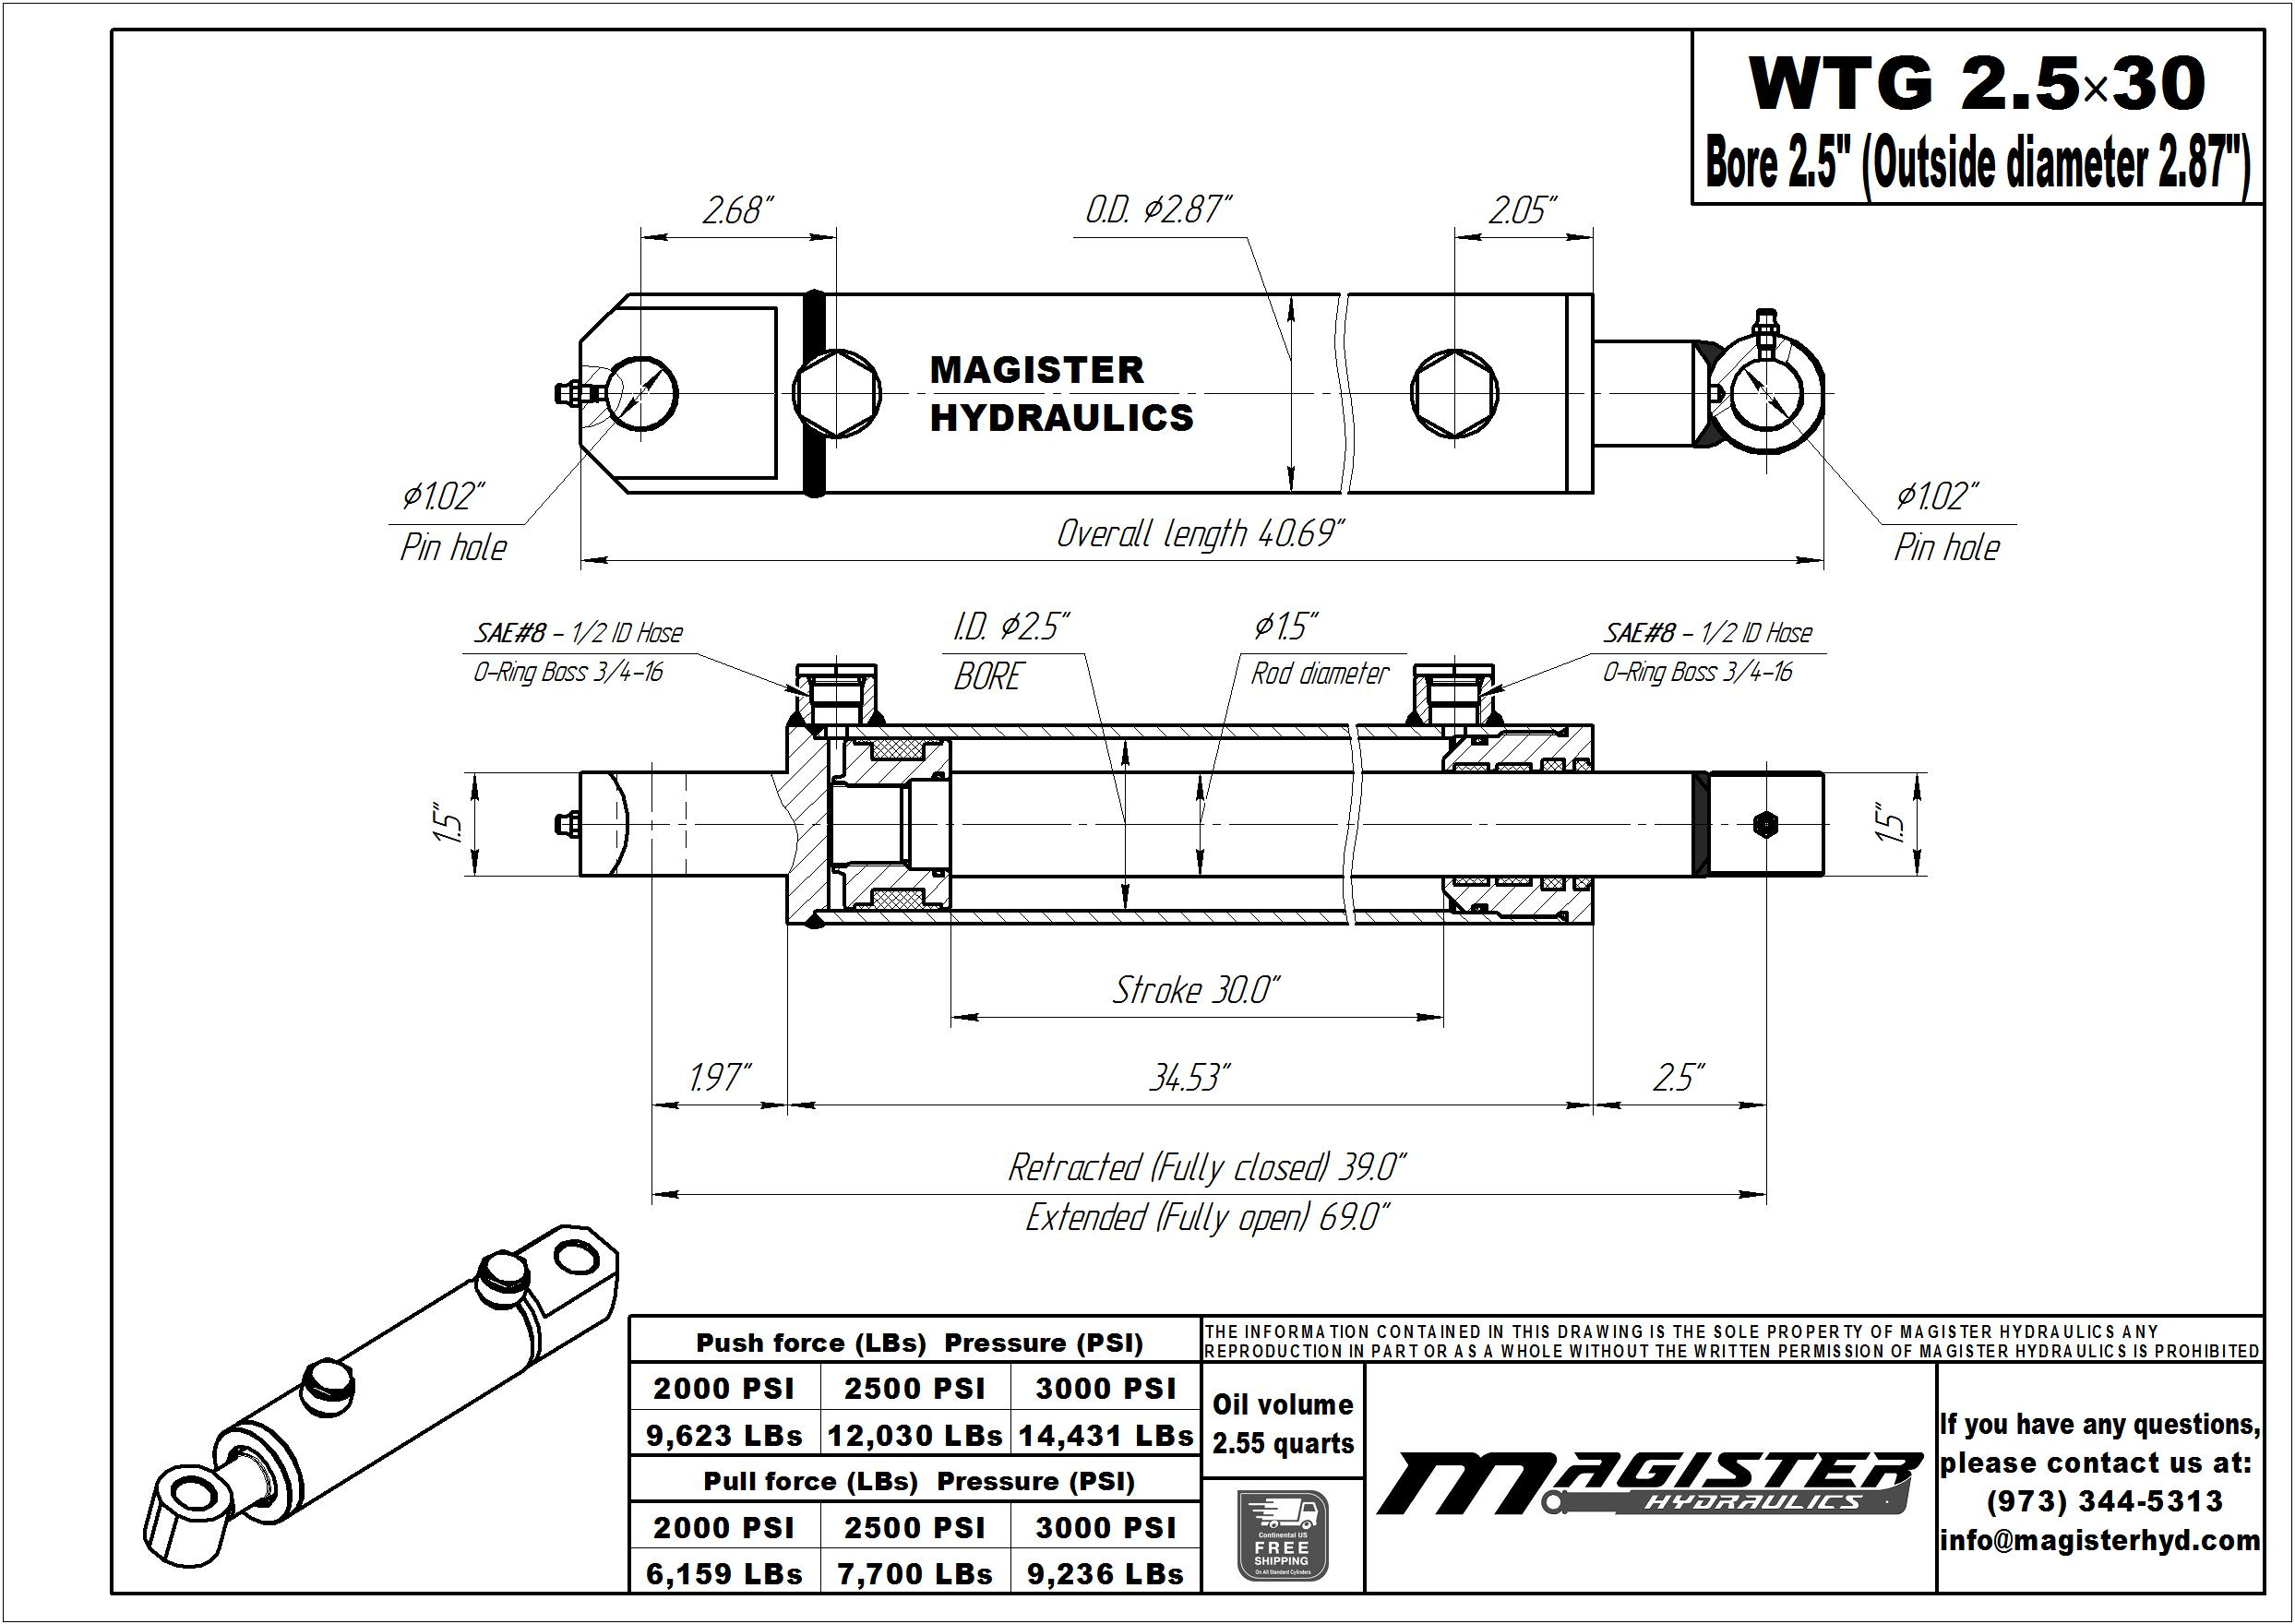 2.5 bore x 30 stroke hydraulic cylinder, welded tang double acting cylinder | Magister Hydraulics